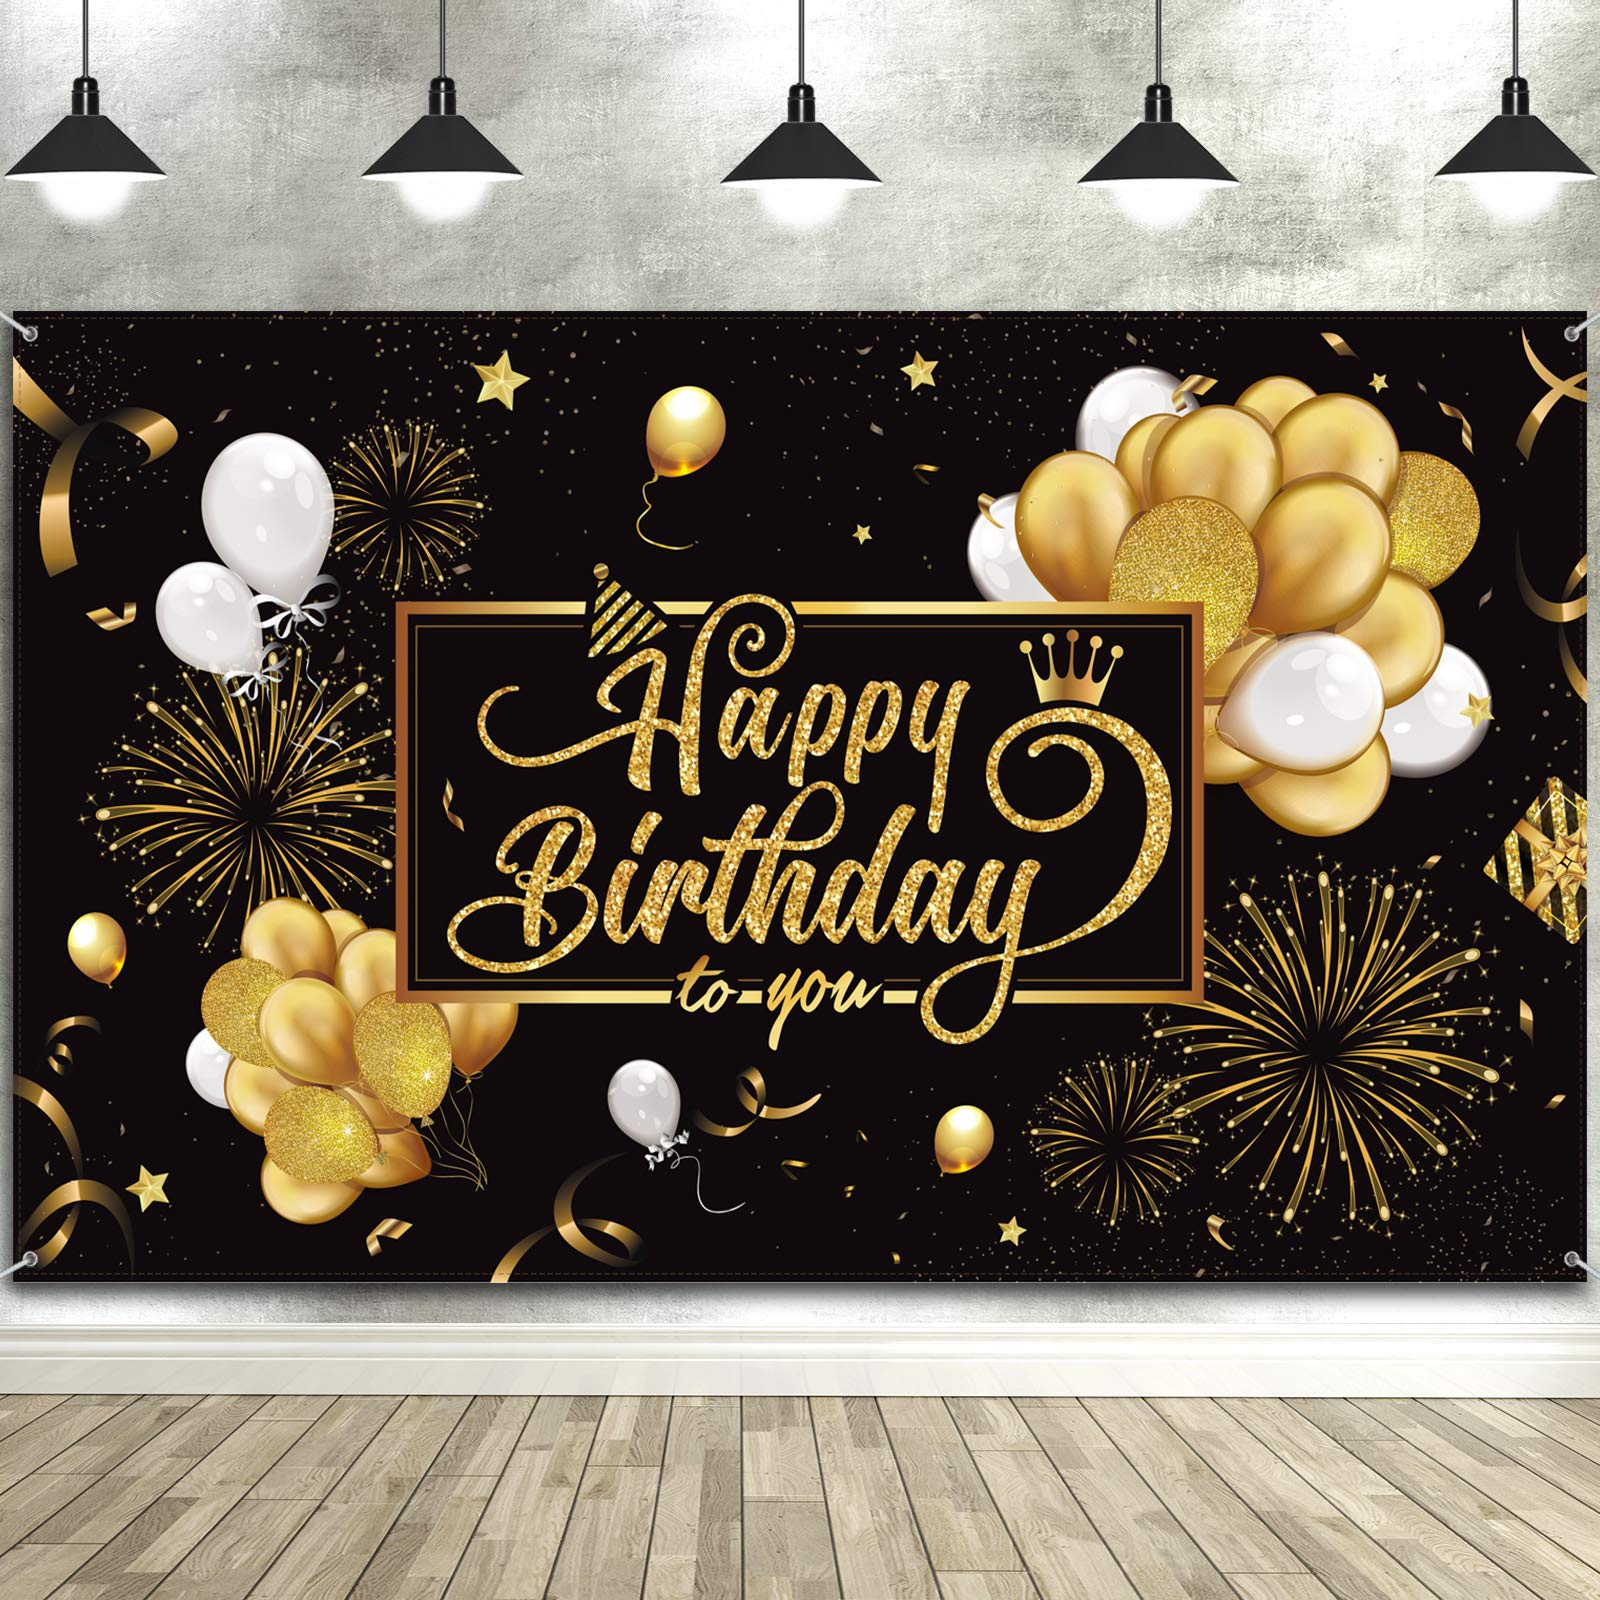 Happy Birthday Backdrop Banner Large Black Gold Balloon Star Fireworks Party Sign Poster Photo Booth Backdrop for Men Women 30th 40th 50th 60th 70th 80th Birthday Party Decorations, 72.8 x 43.3 Inch